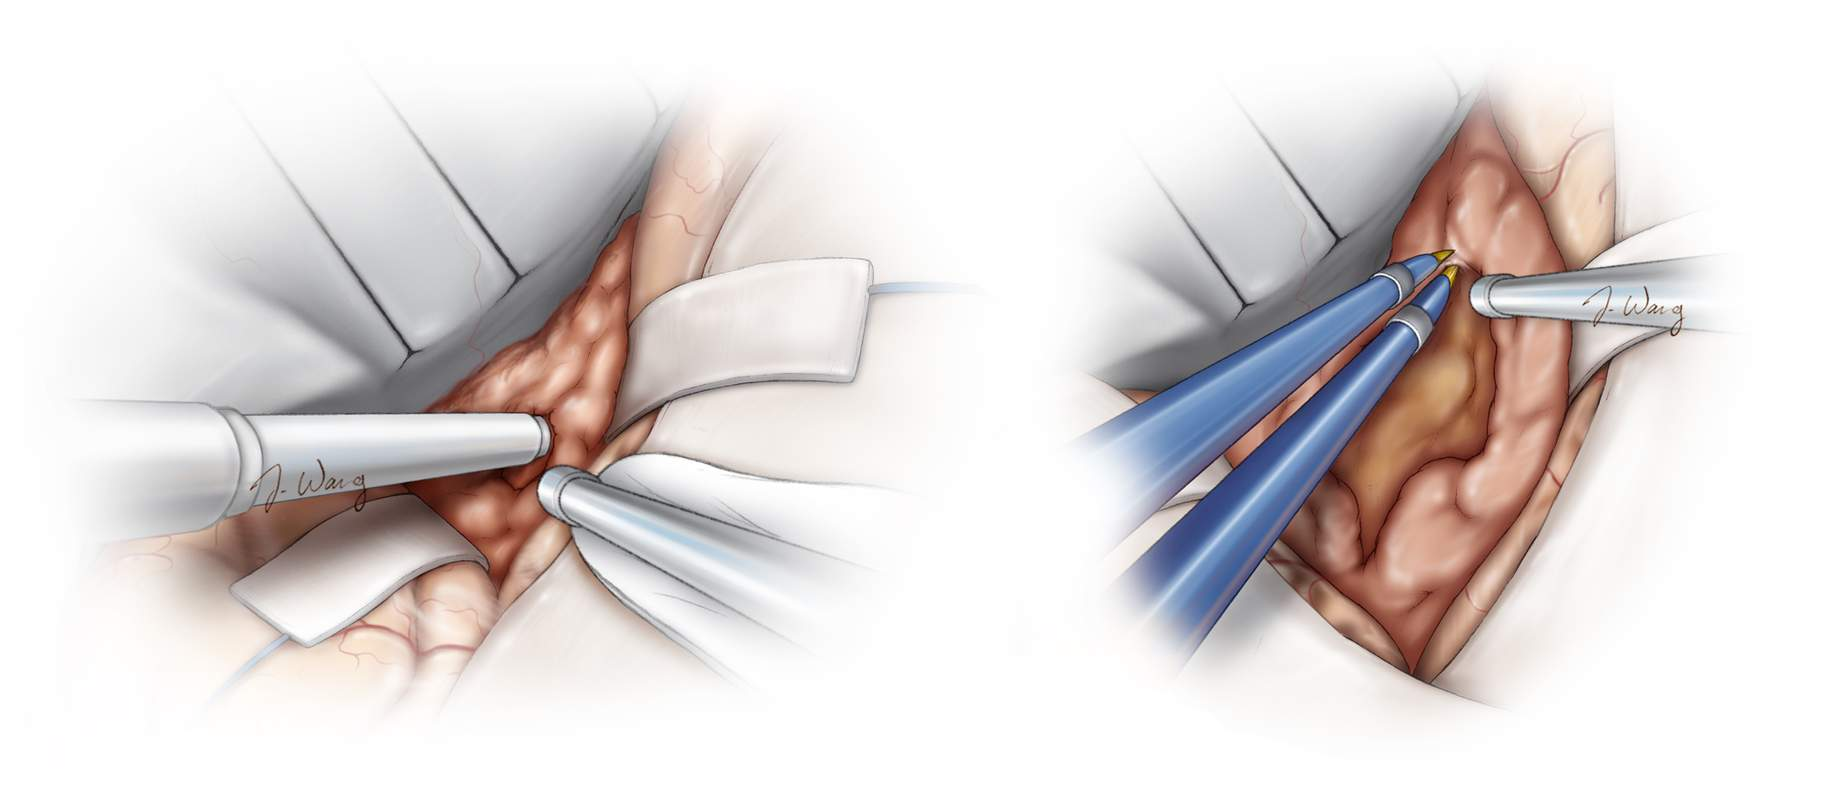 Figure 9: Enucleation and debulking of firm tumors is conducted using an ultrasonic aspirator (left image) while softer tumors are debulked using bipolar electrocautery, suction apparatus and pituitary rongeurs. Next, I gently draw upon the tumor capsule to cause its collapse into the debulked core of the tumor (right image). It is critical to stay inside the tumor capsule. Violation of the capsule places the vulnerable adherent medial cerebrovascular structures at risk. Vicinity of the ultrasonic aspirator to the vessels, even without an immediate contact, can lead to irreparable vascular injury. This device should be used away from the critical vascular structures.